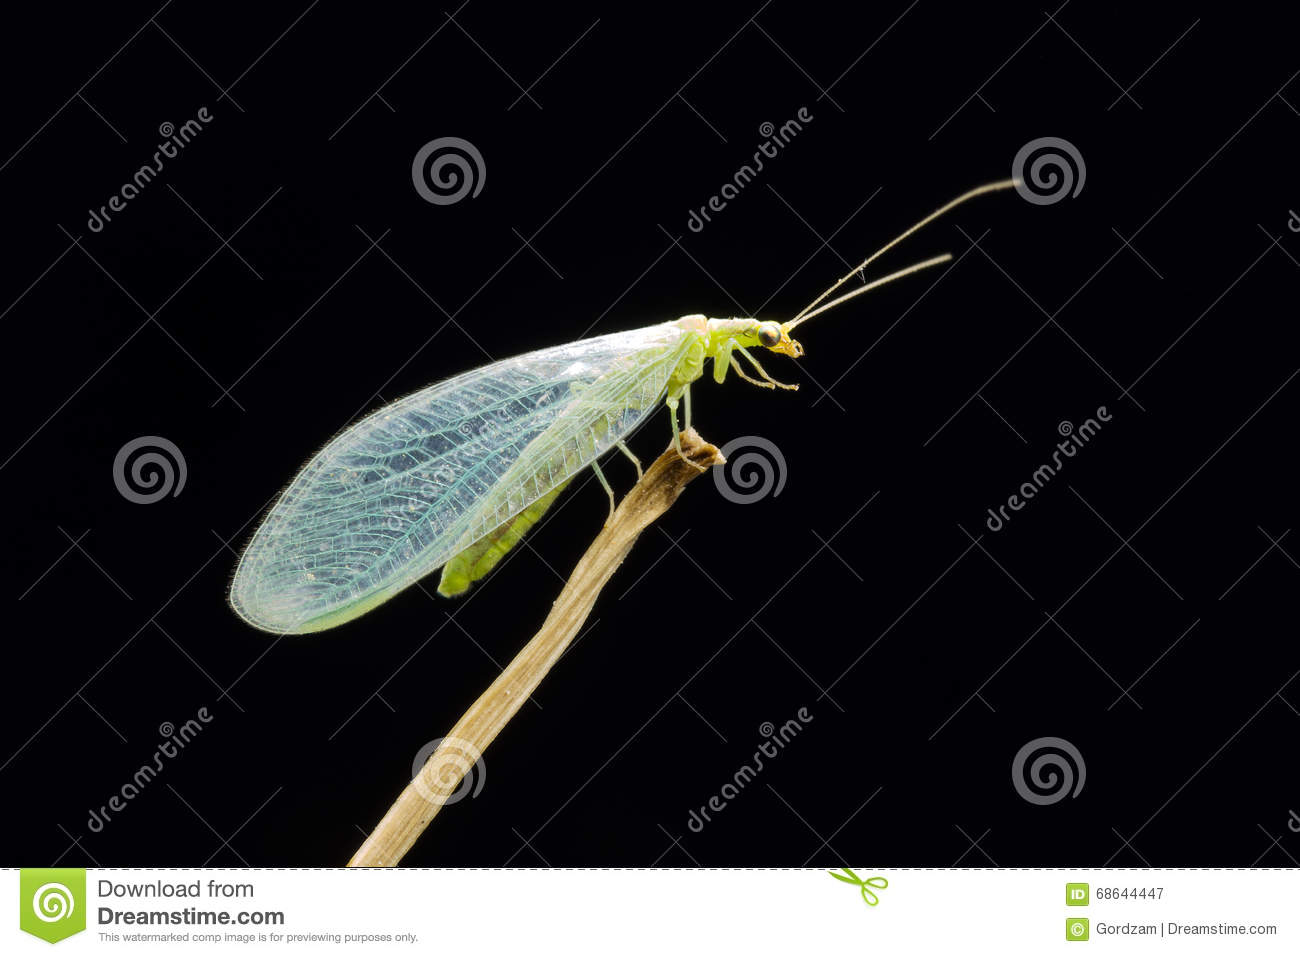 Lacewing na noite